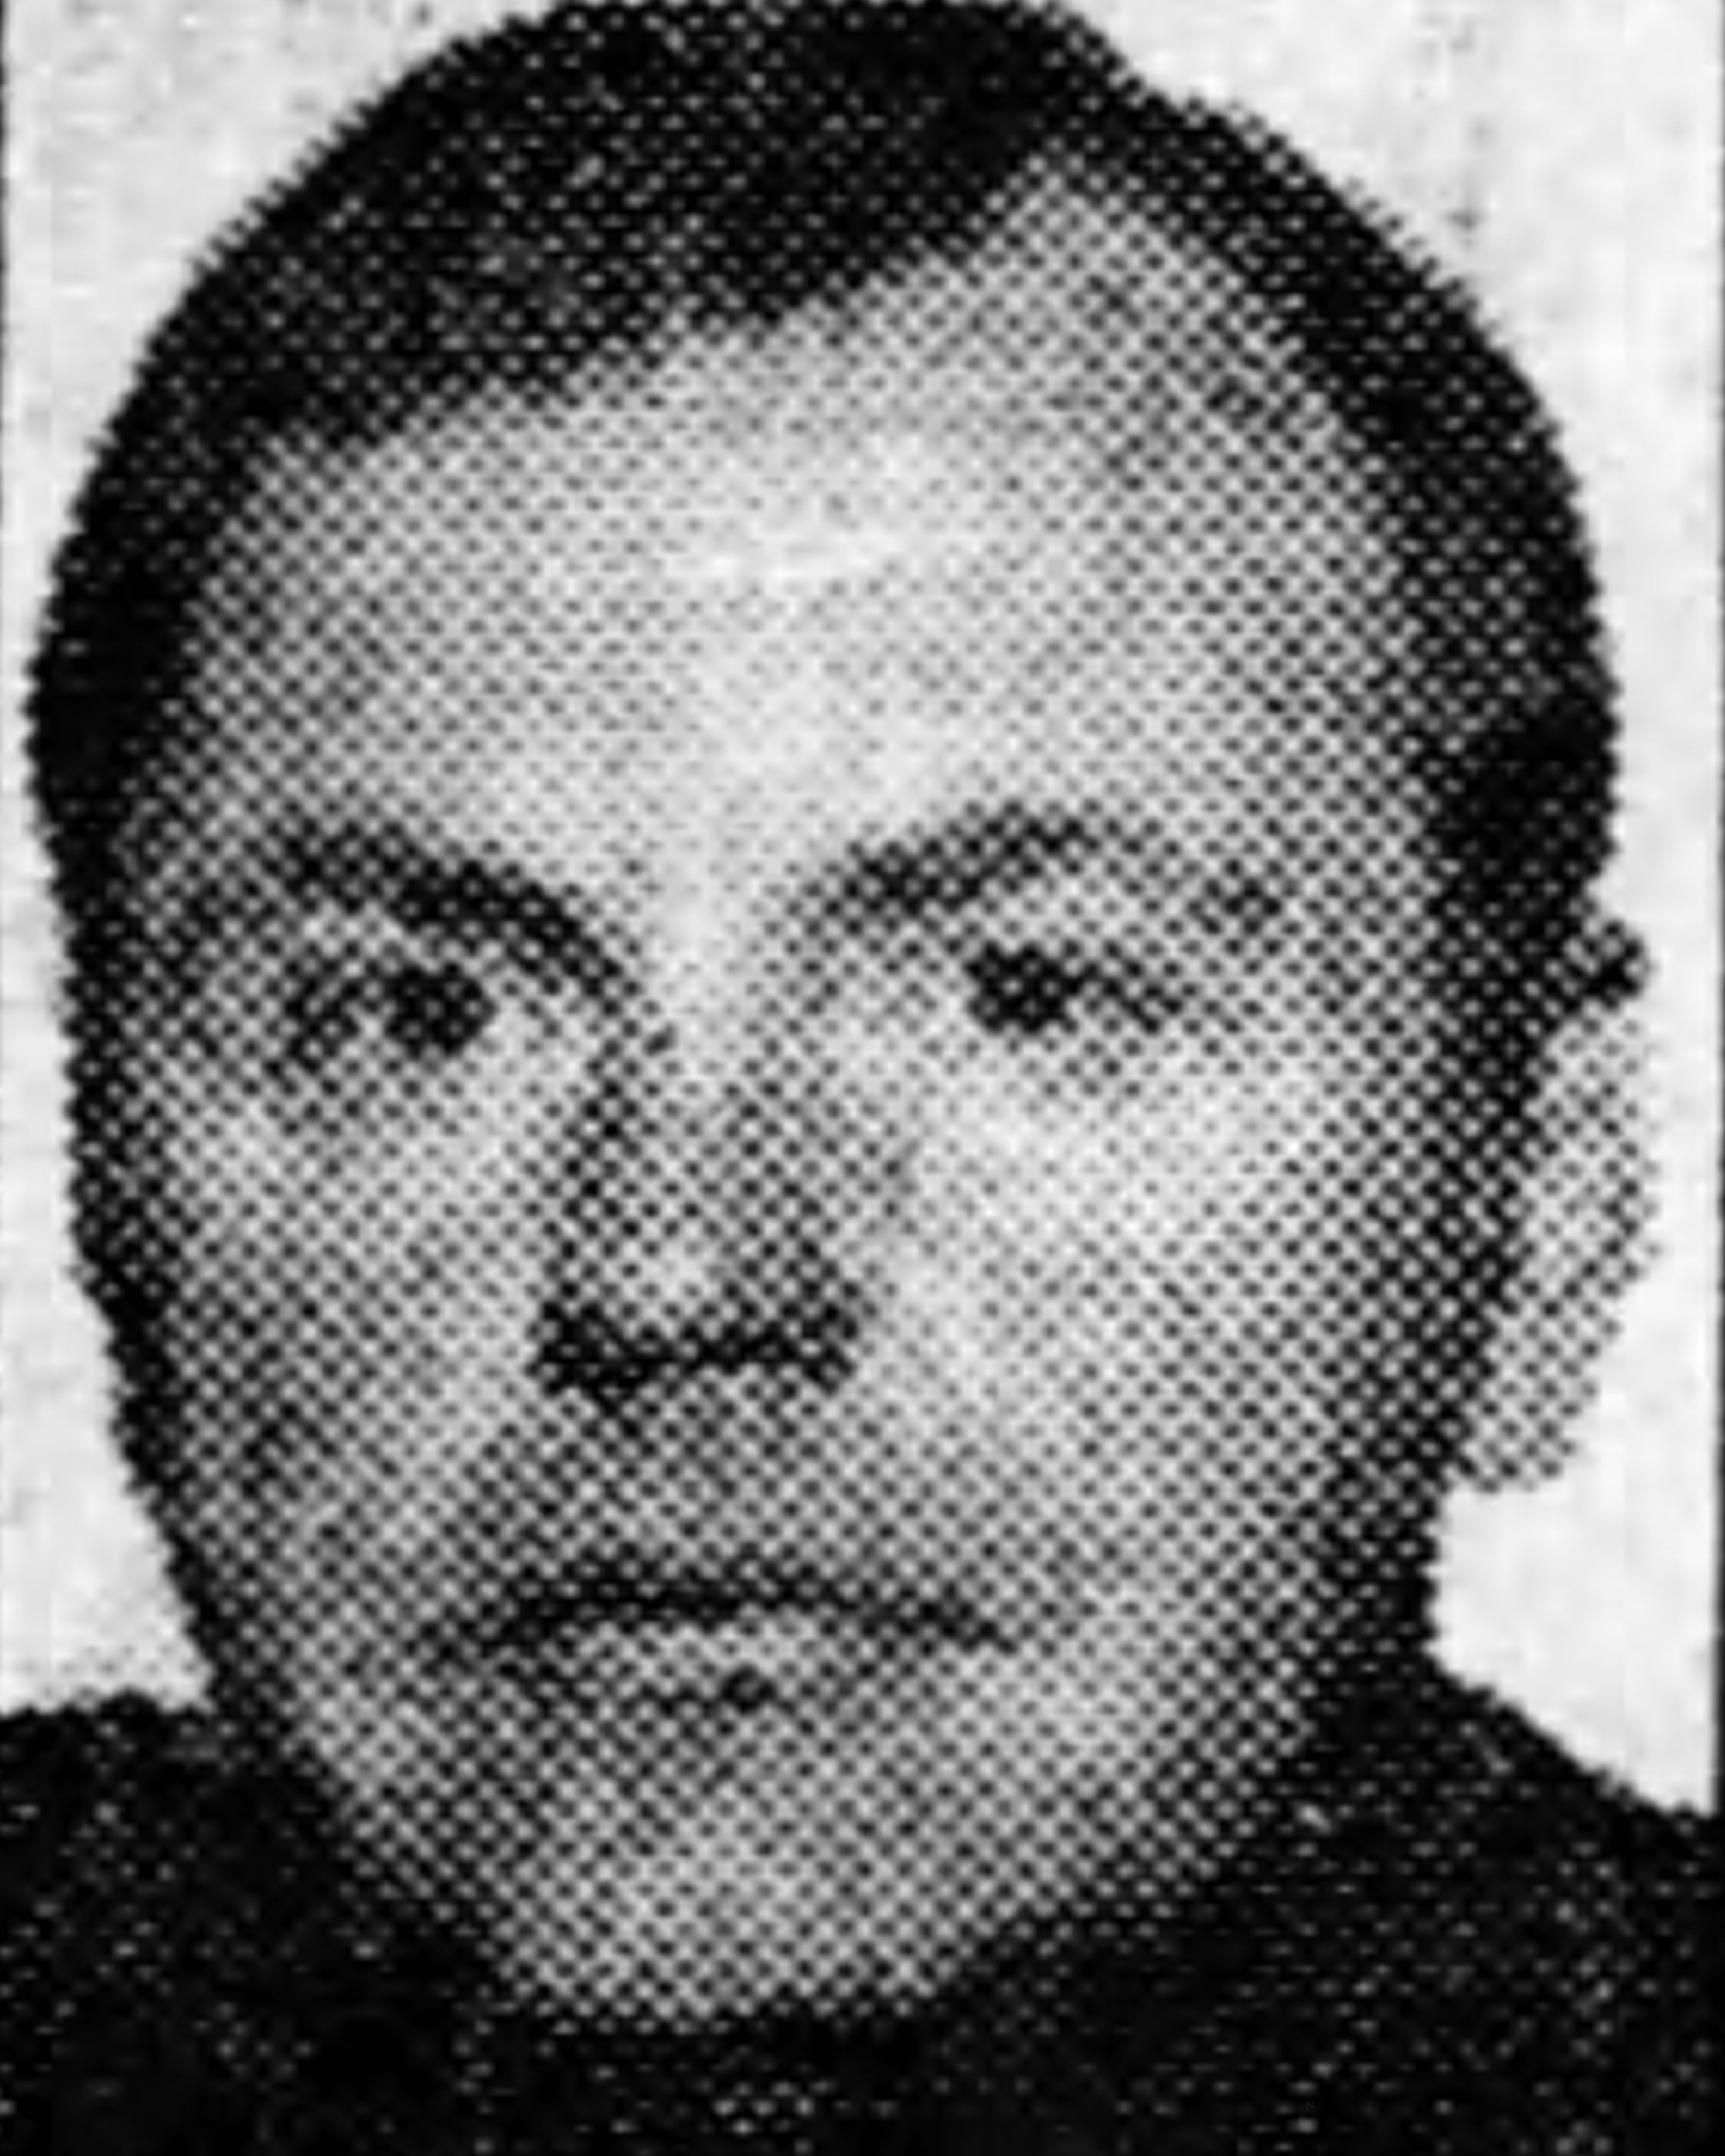 Police Officer Ronald Edgar Unger | Roscommon Township Police Department, Michigan